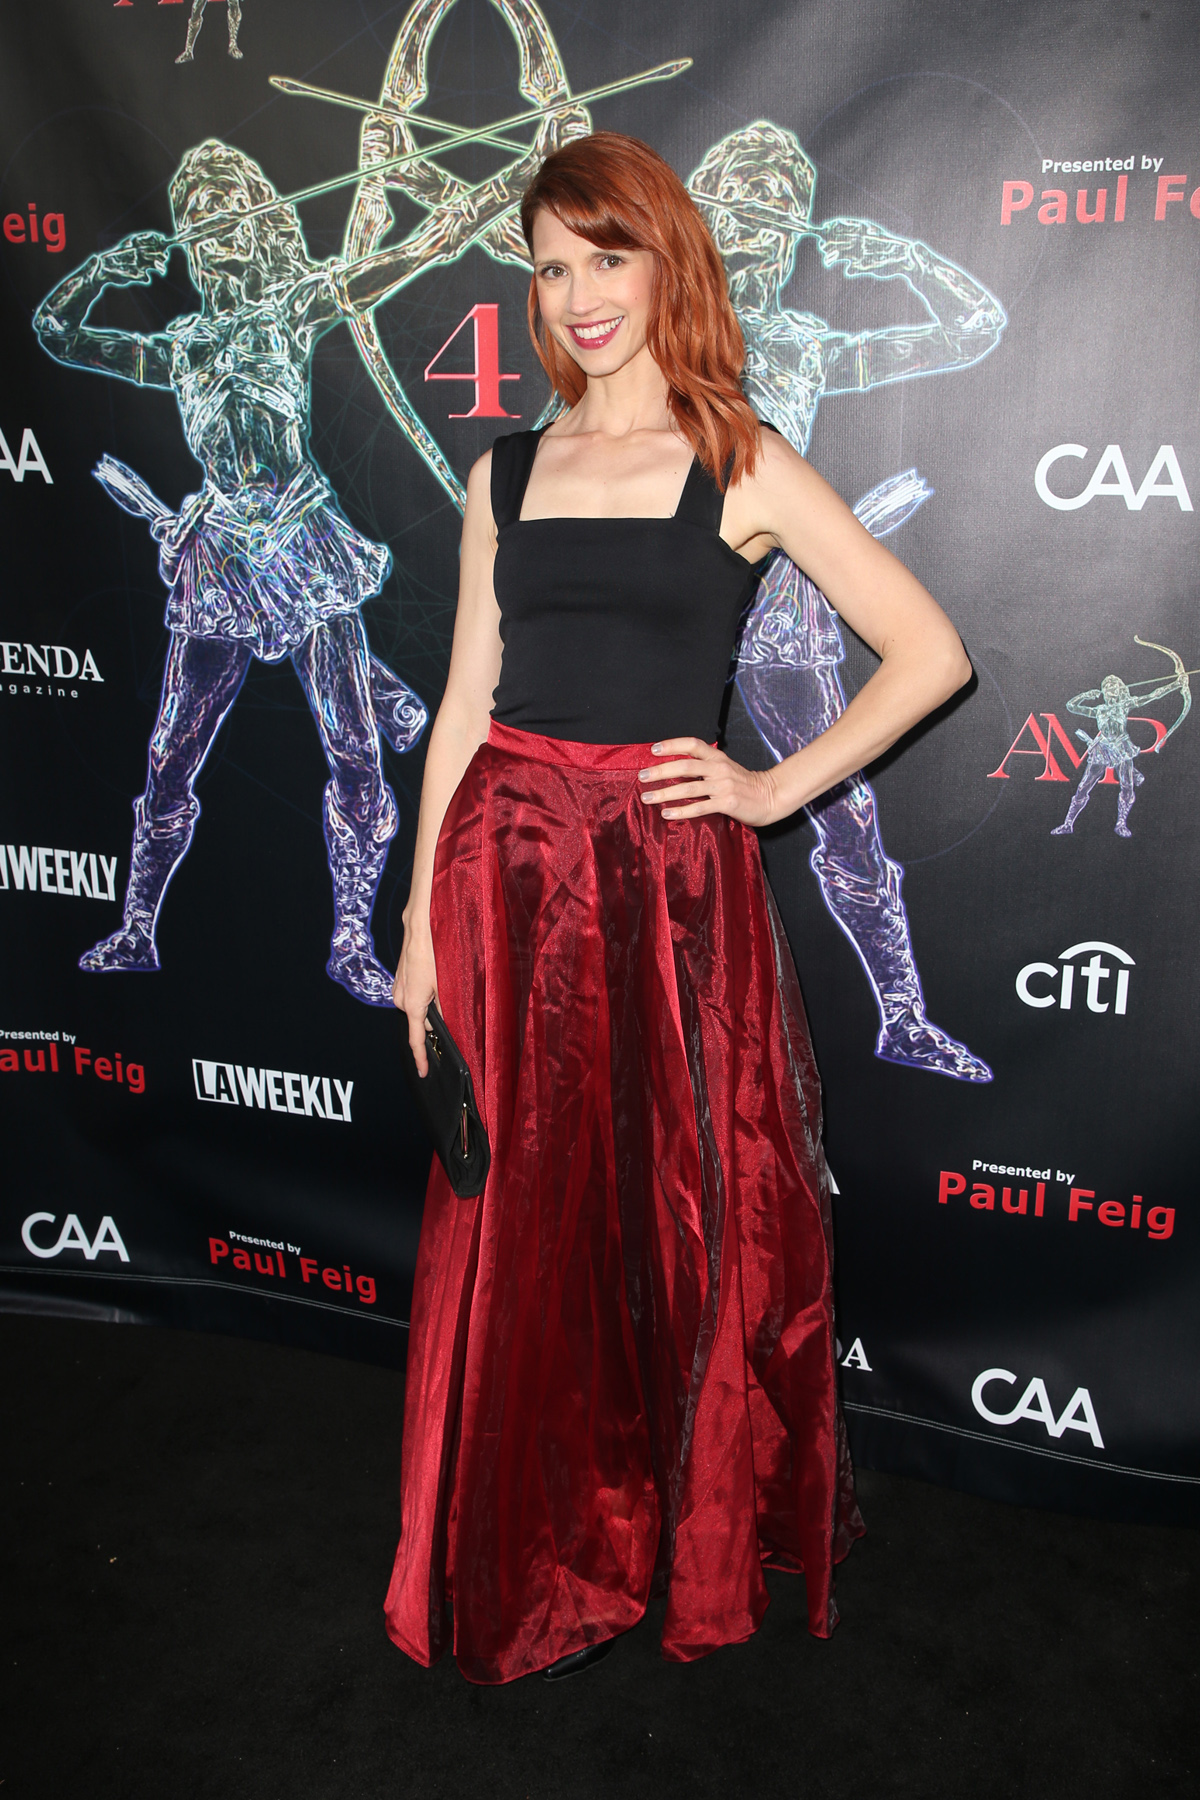 BEVERLY HILLS, CA - APRIL 26: Julie McNiven, at the 2018 Artemis Awards Gala at the Ahrya Fine Arts Theater in Beverly Hills, California on April 26, 2018. Credit: Faye Sadou/MediaPunch